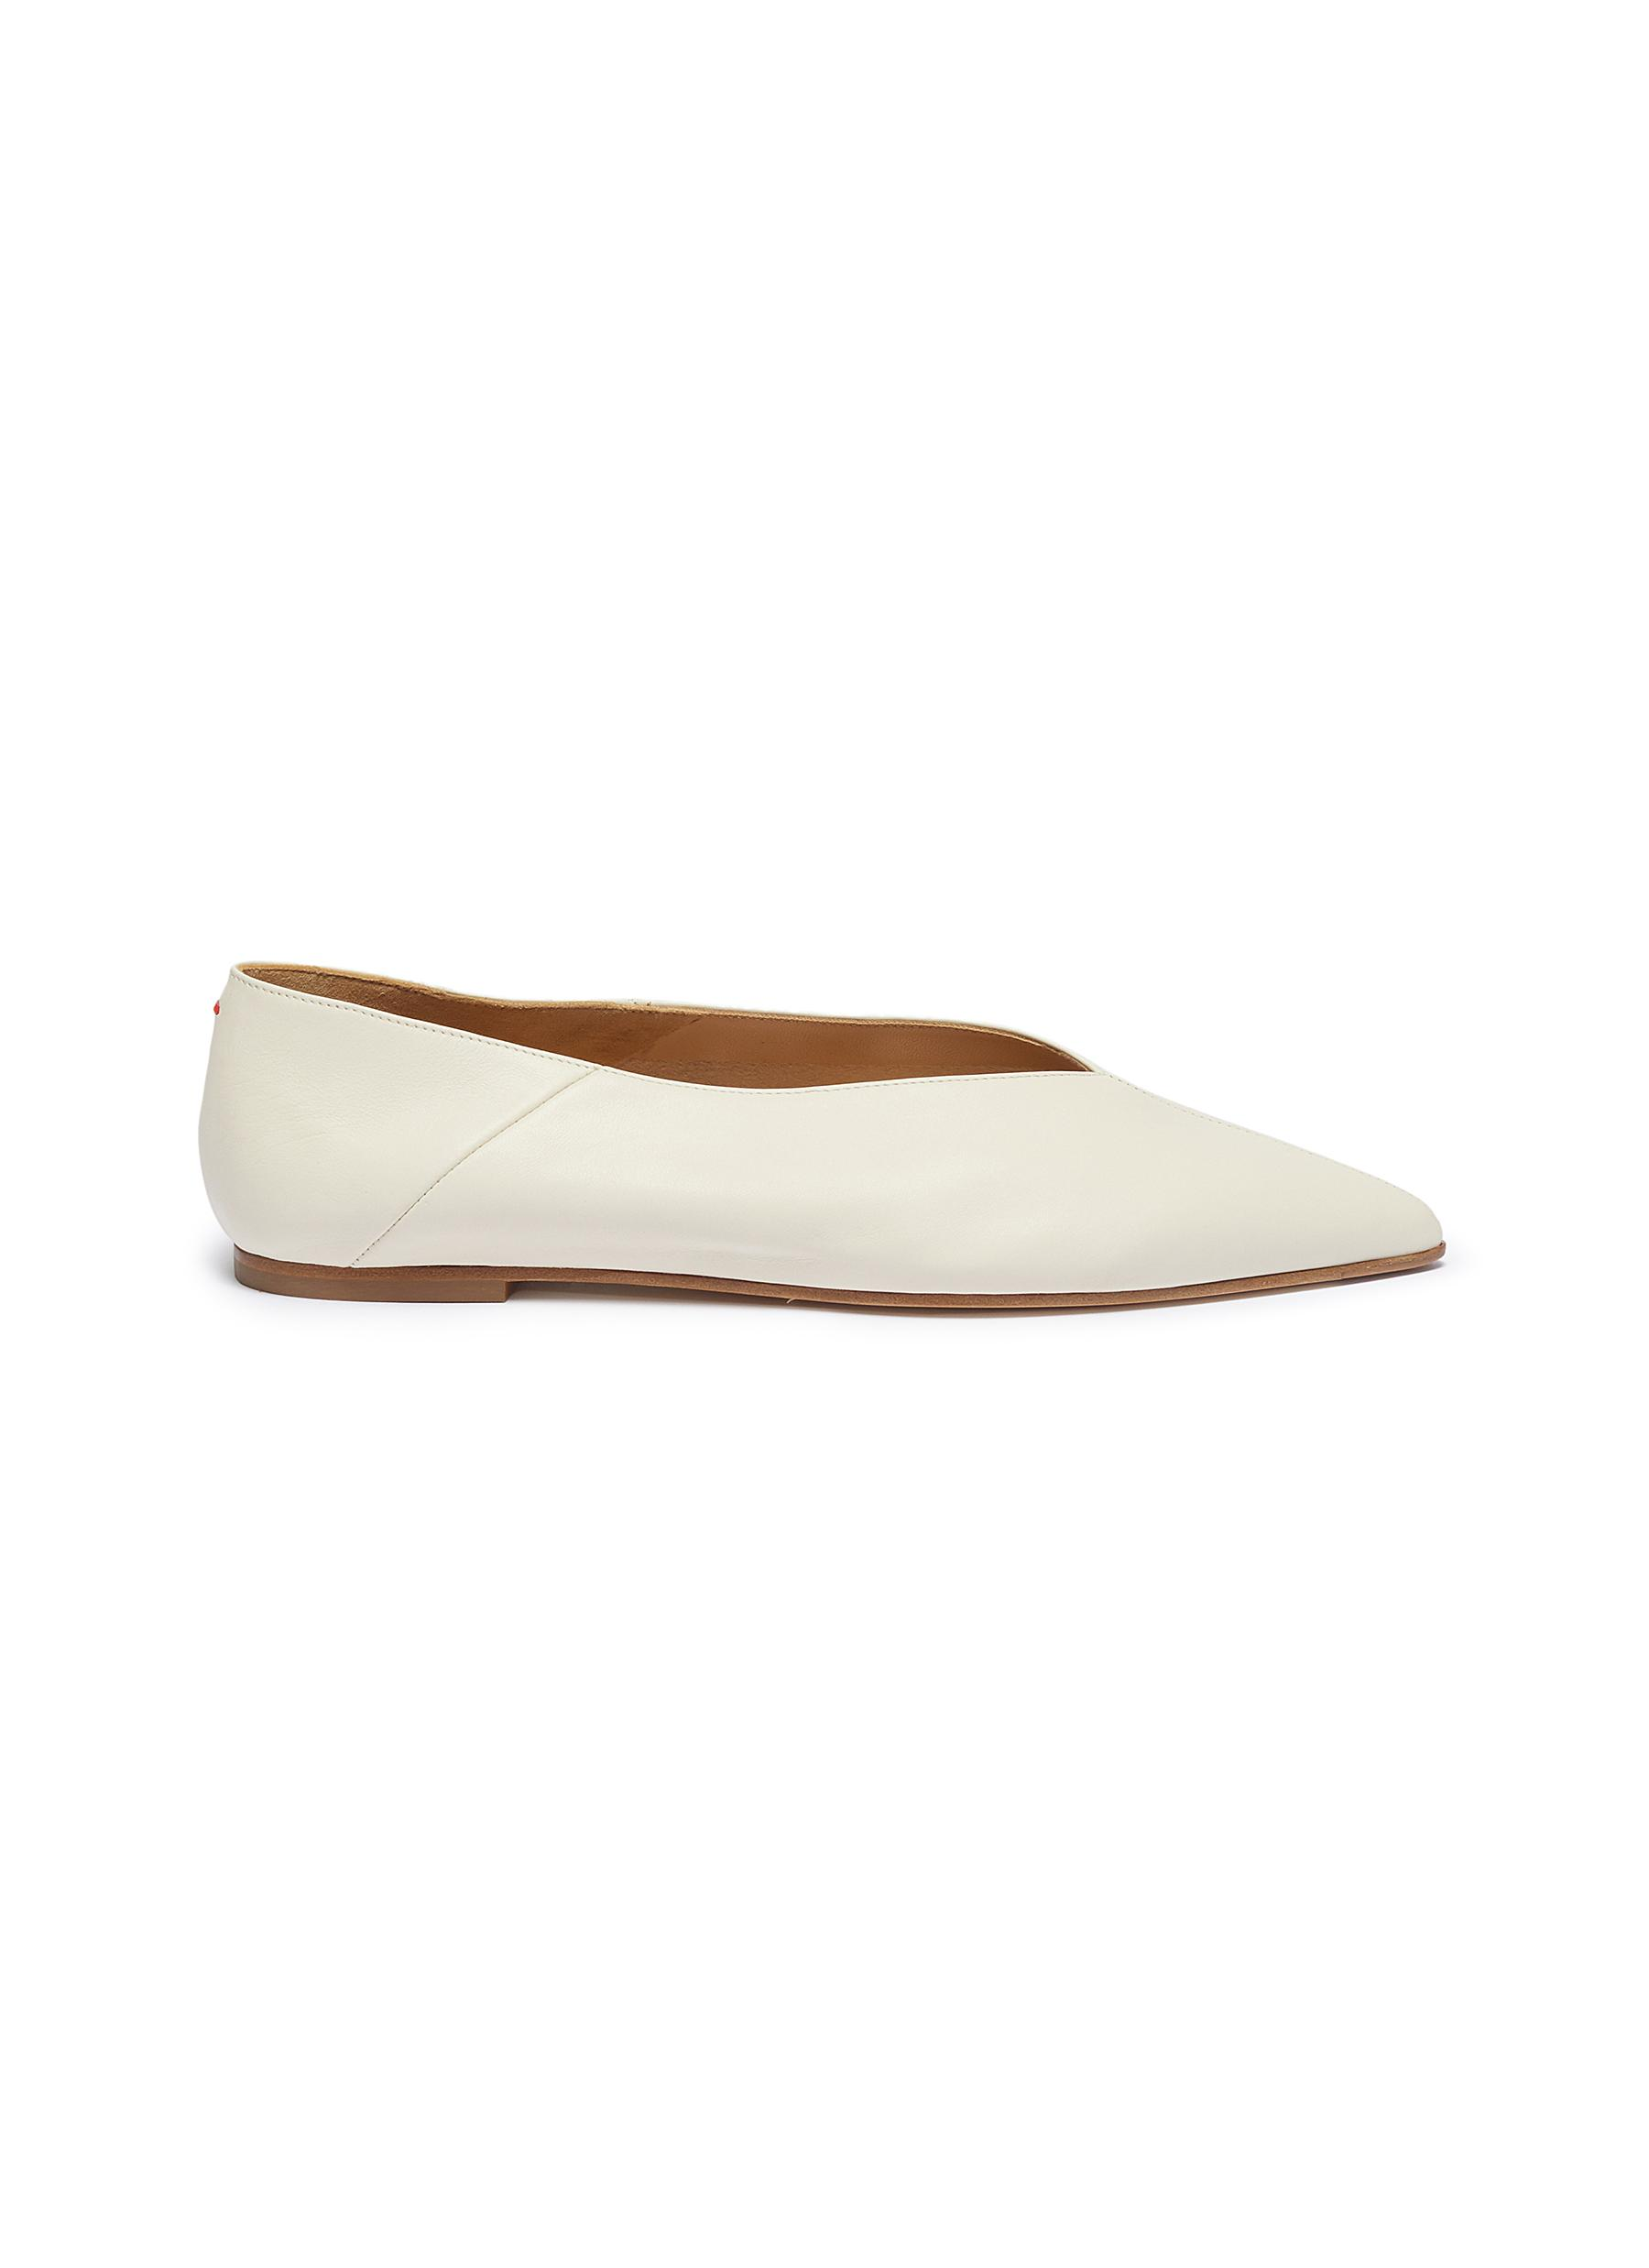 Moa choked-up leather flats by Aeyde